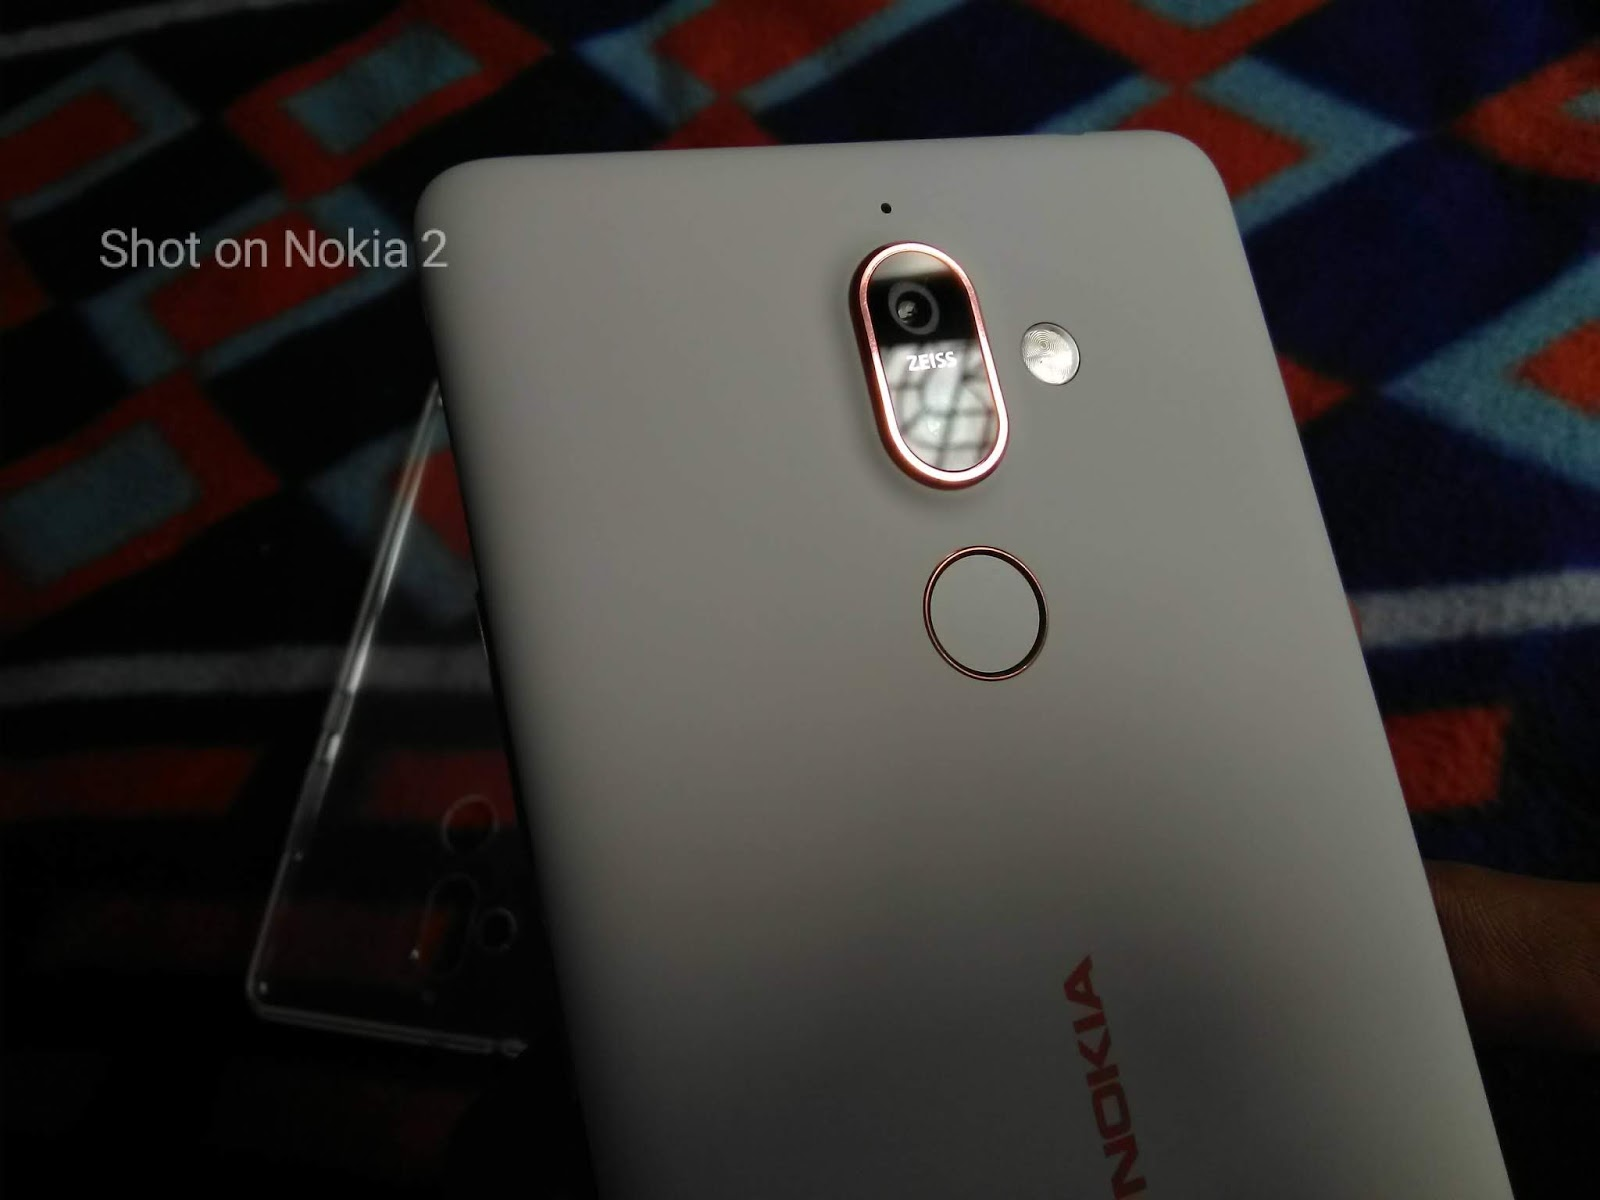 Nokia 7 plus starts receiving June 2018 Android Security update